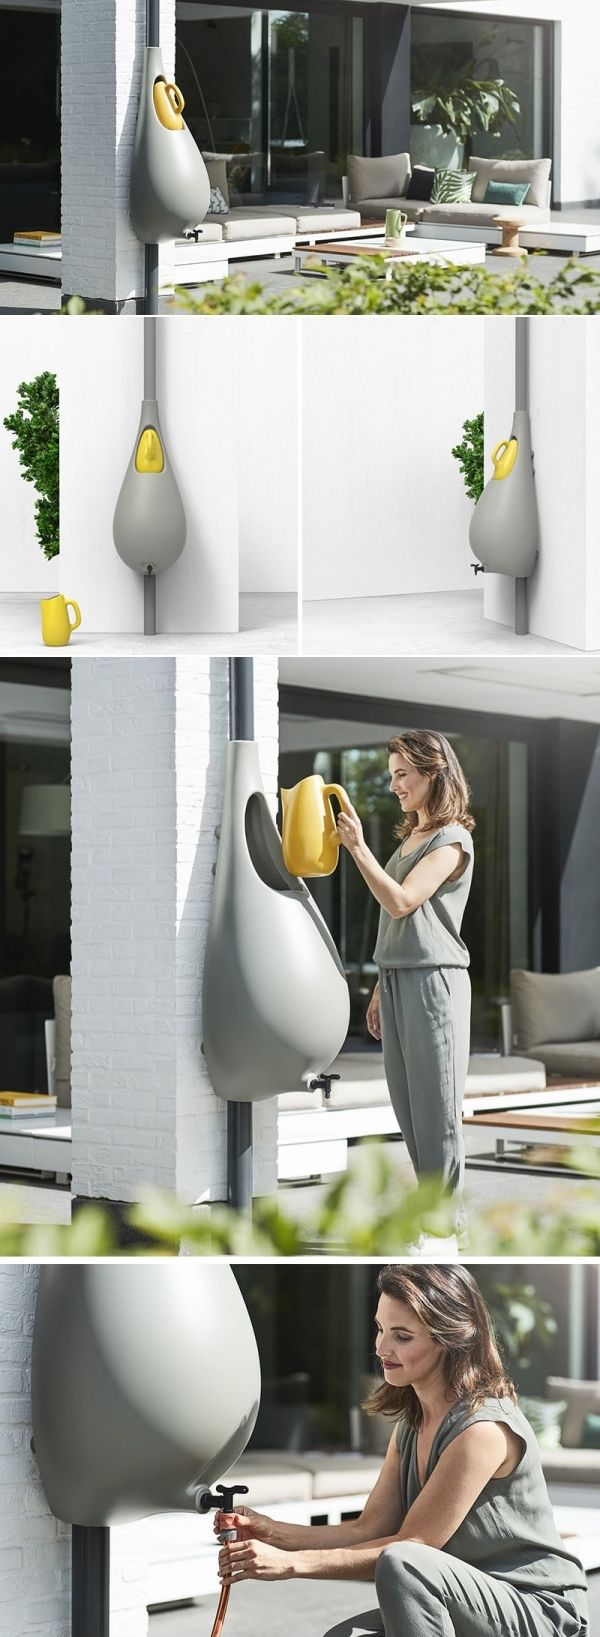 This Bulbous Rain Barrel Design Makes It Easy To Collect Rainwater